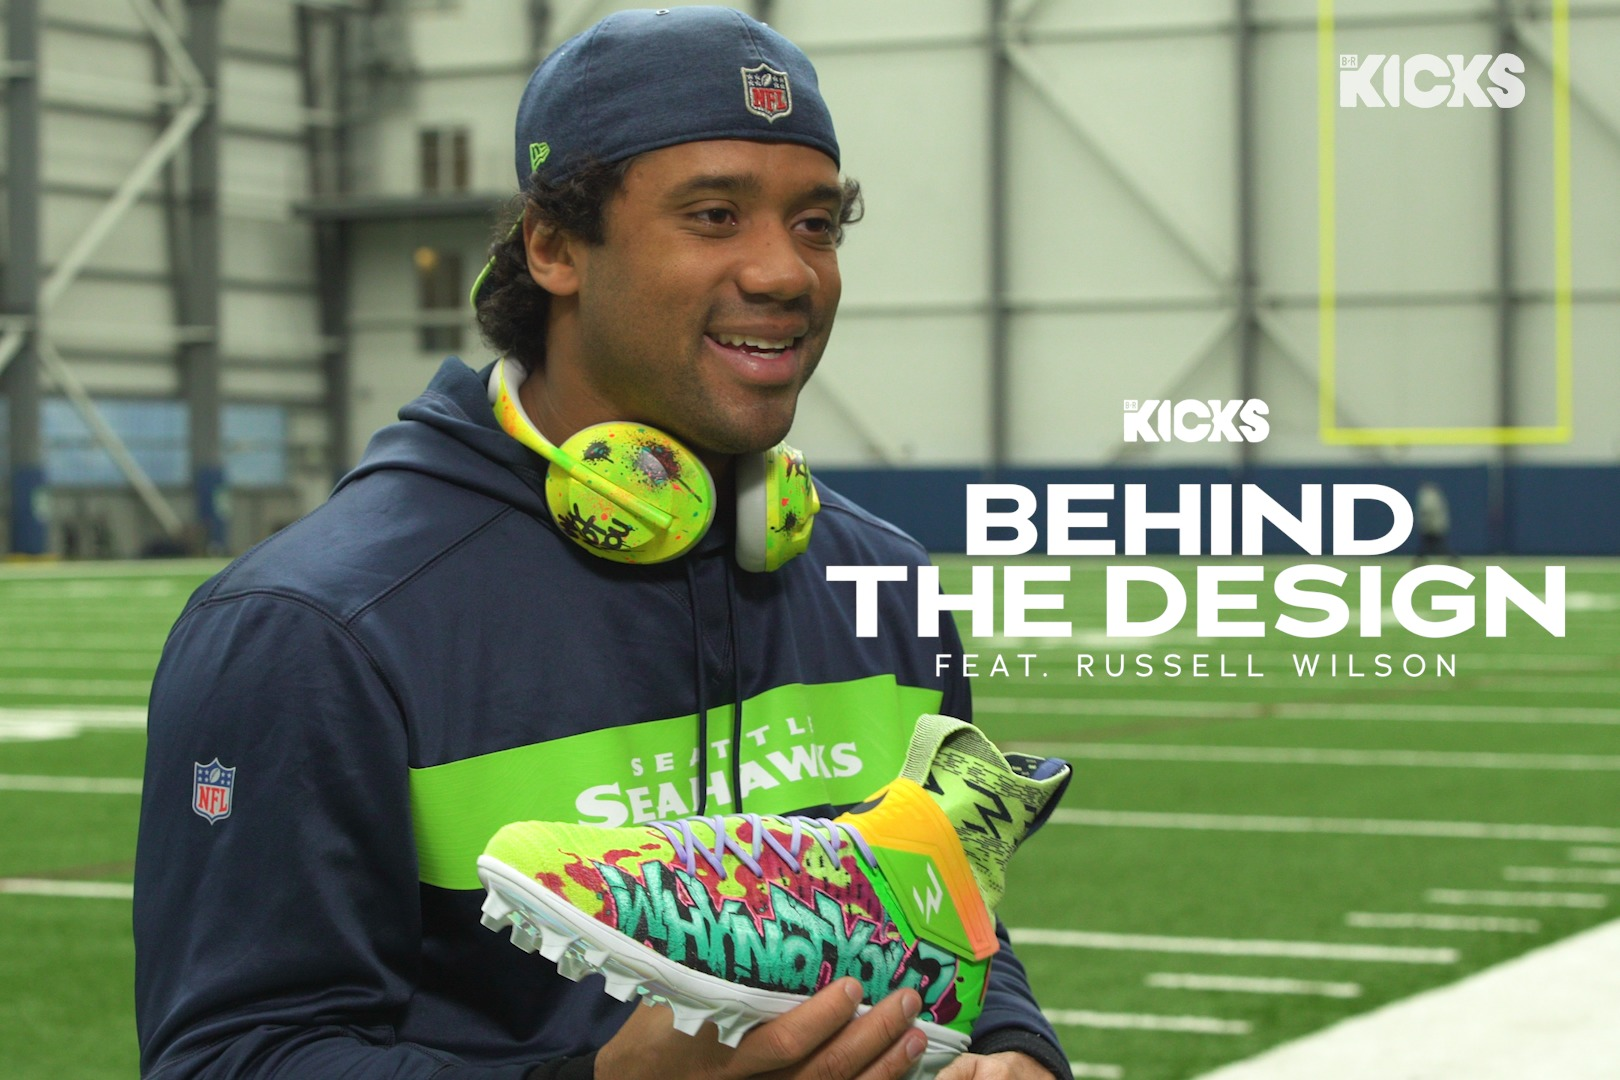 Behind the Design: Russell Wilson